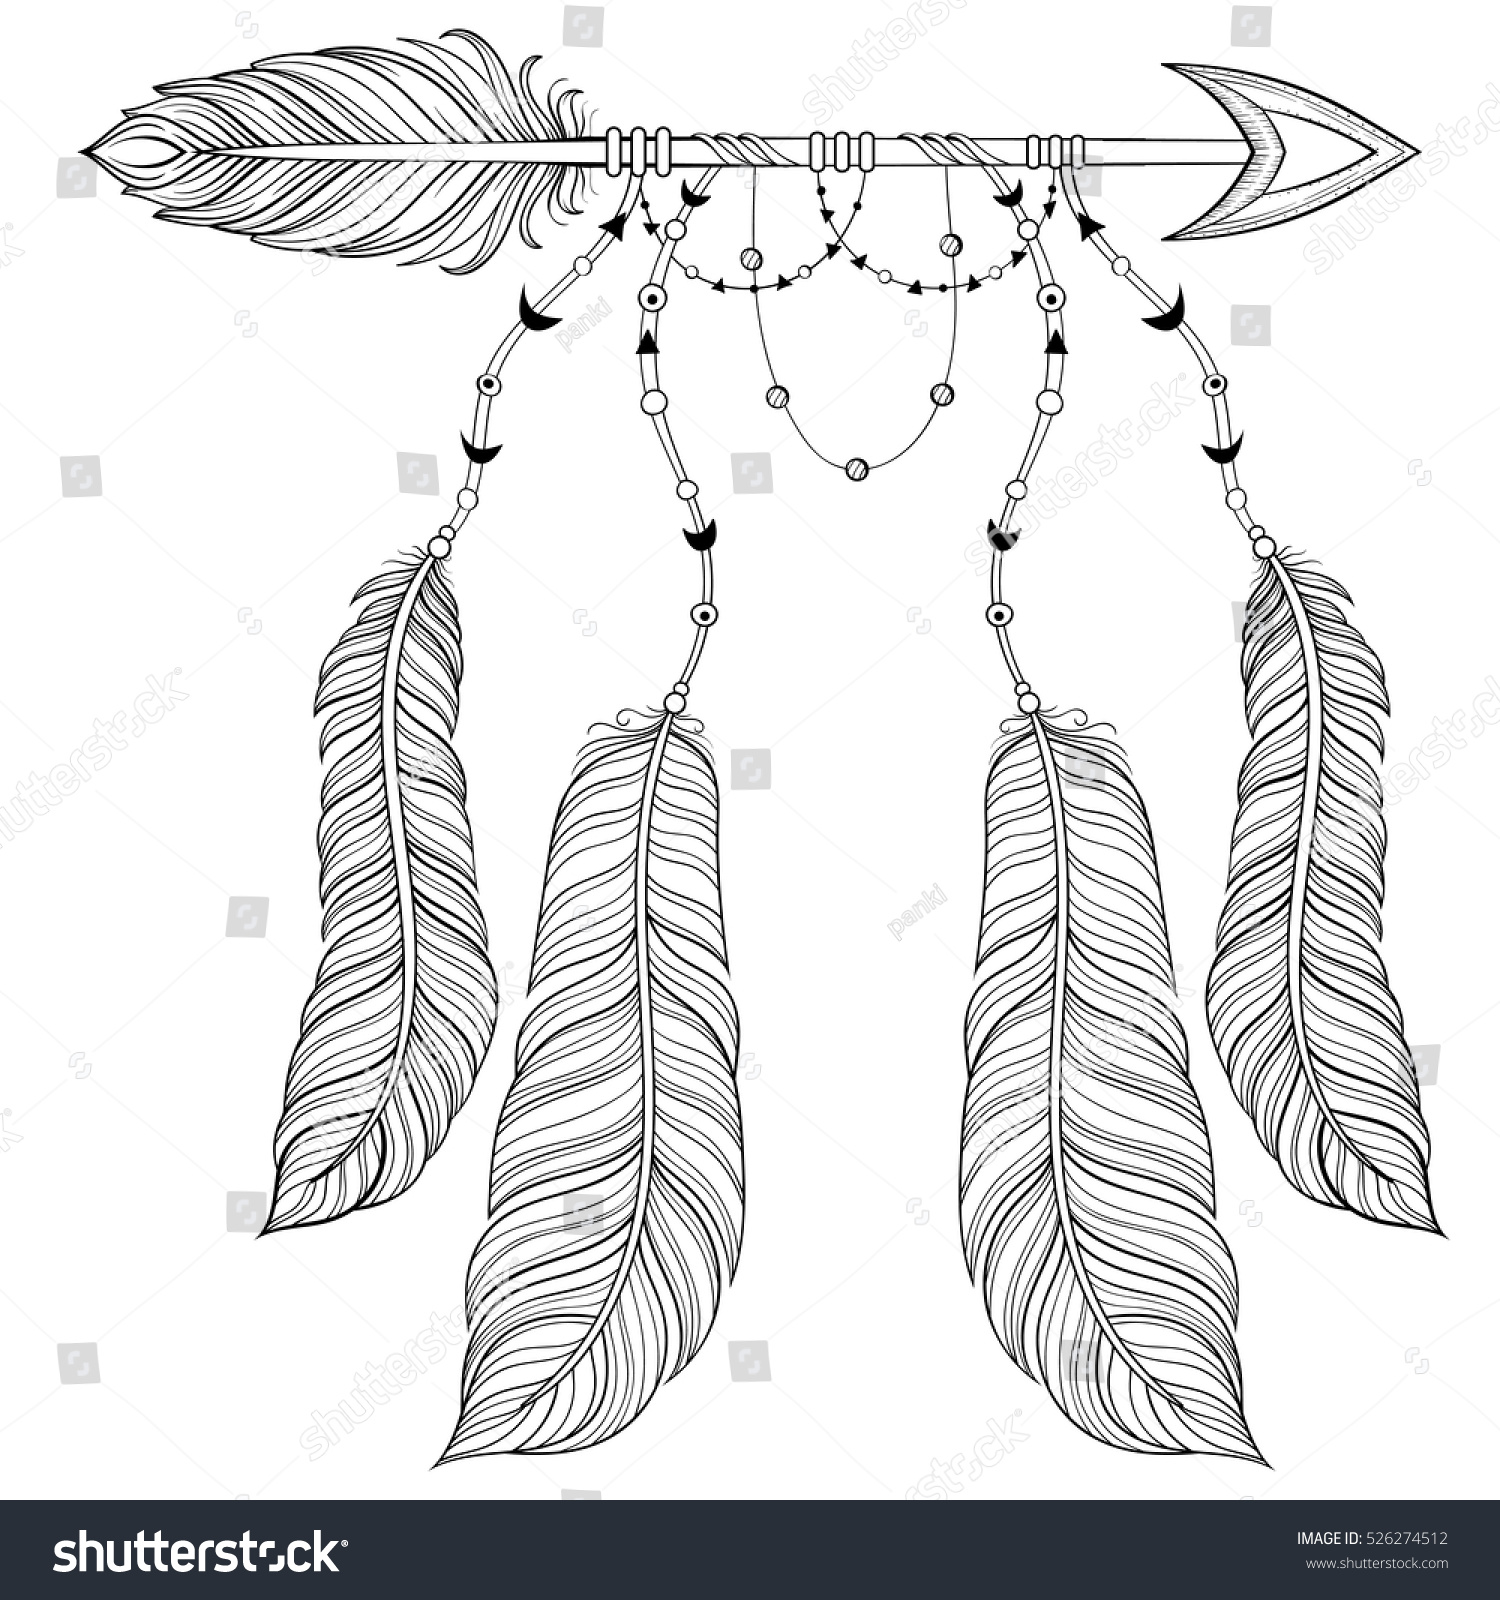 Vector Ethnic Arrow With Bird Feathers Boho Style Concept American Zentangle Illustration For Adult